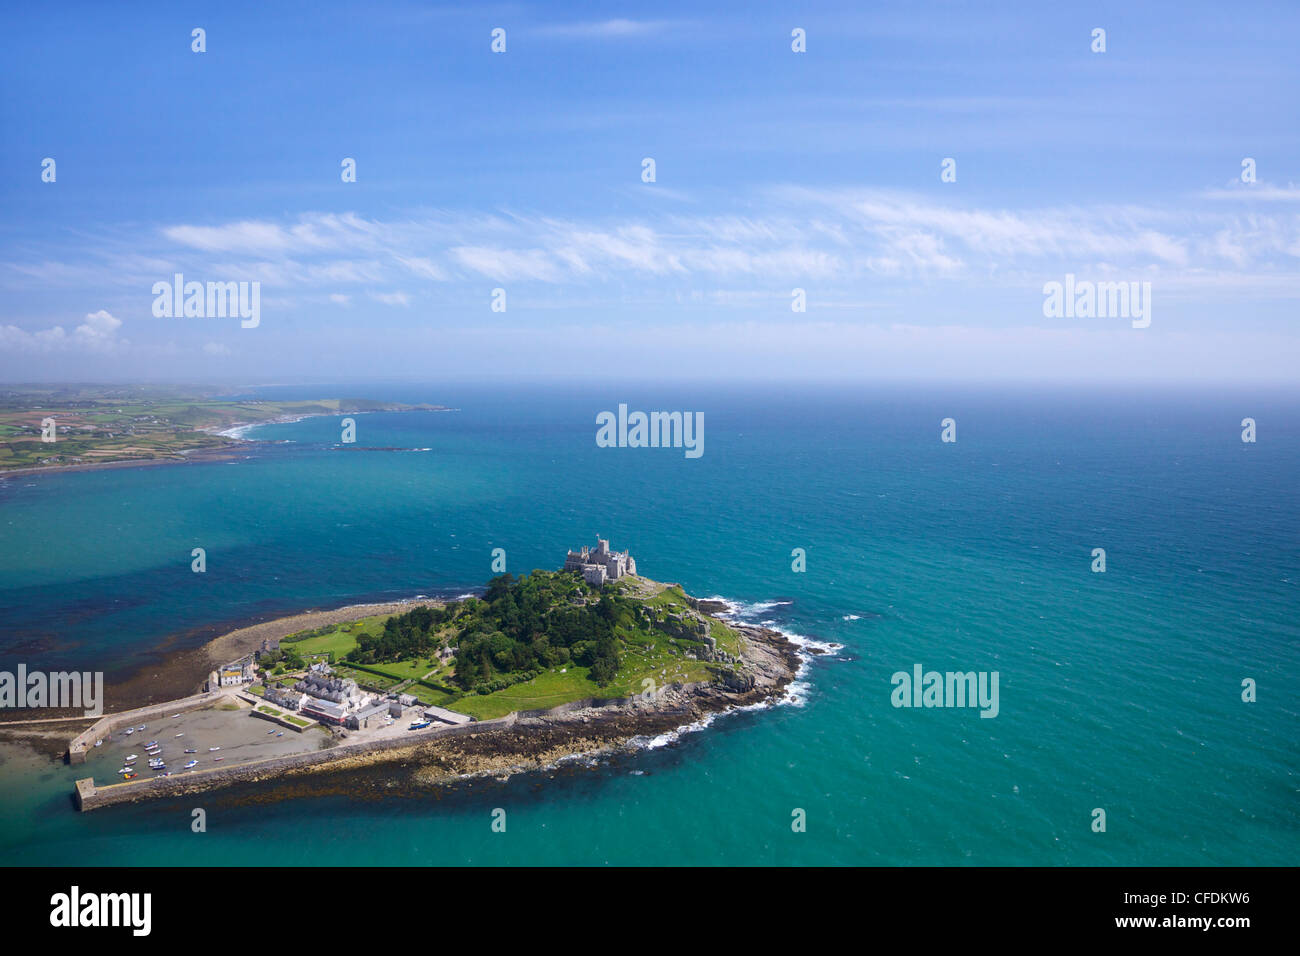 Aerial view of St. Michael's Mount, Penzance, Lands End Peninsula, West Penwith, Cornwall, England, United Kingdom, - Stock Image